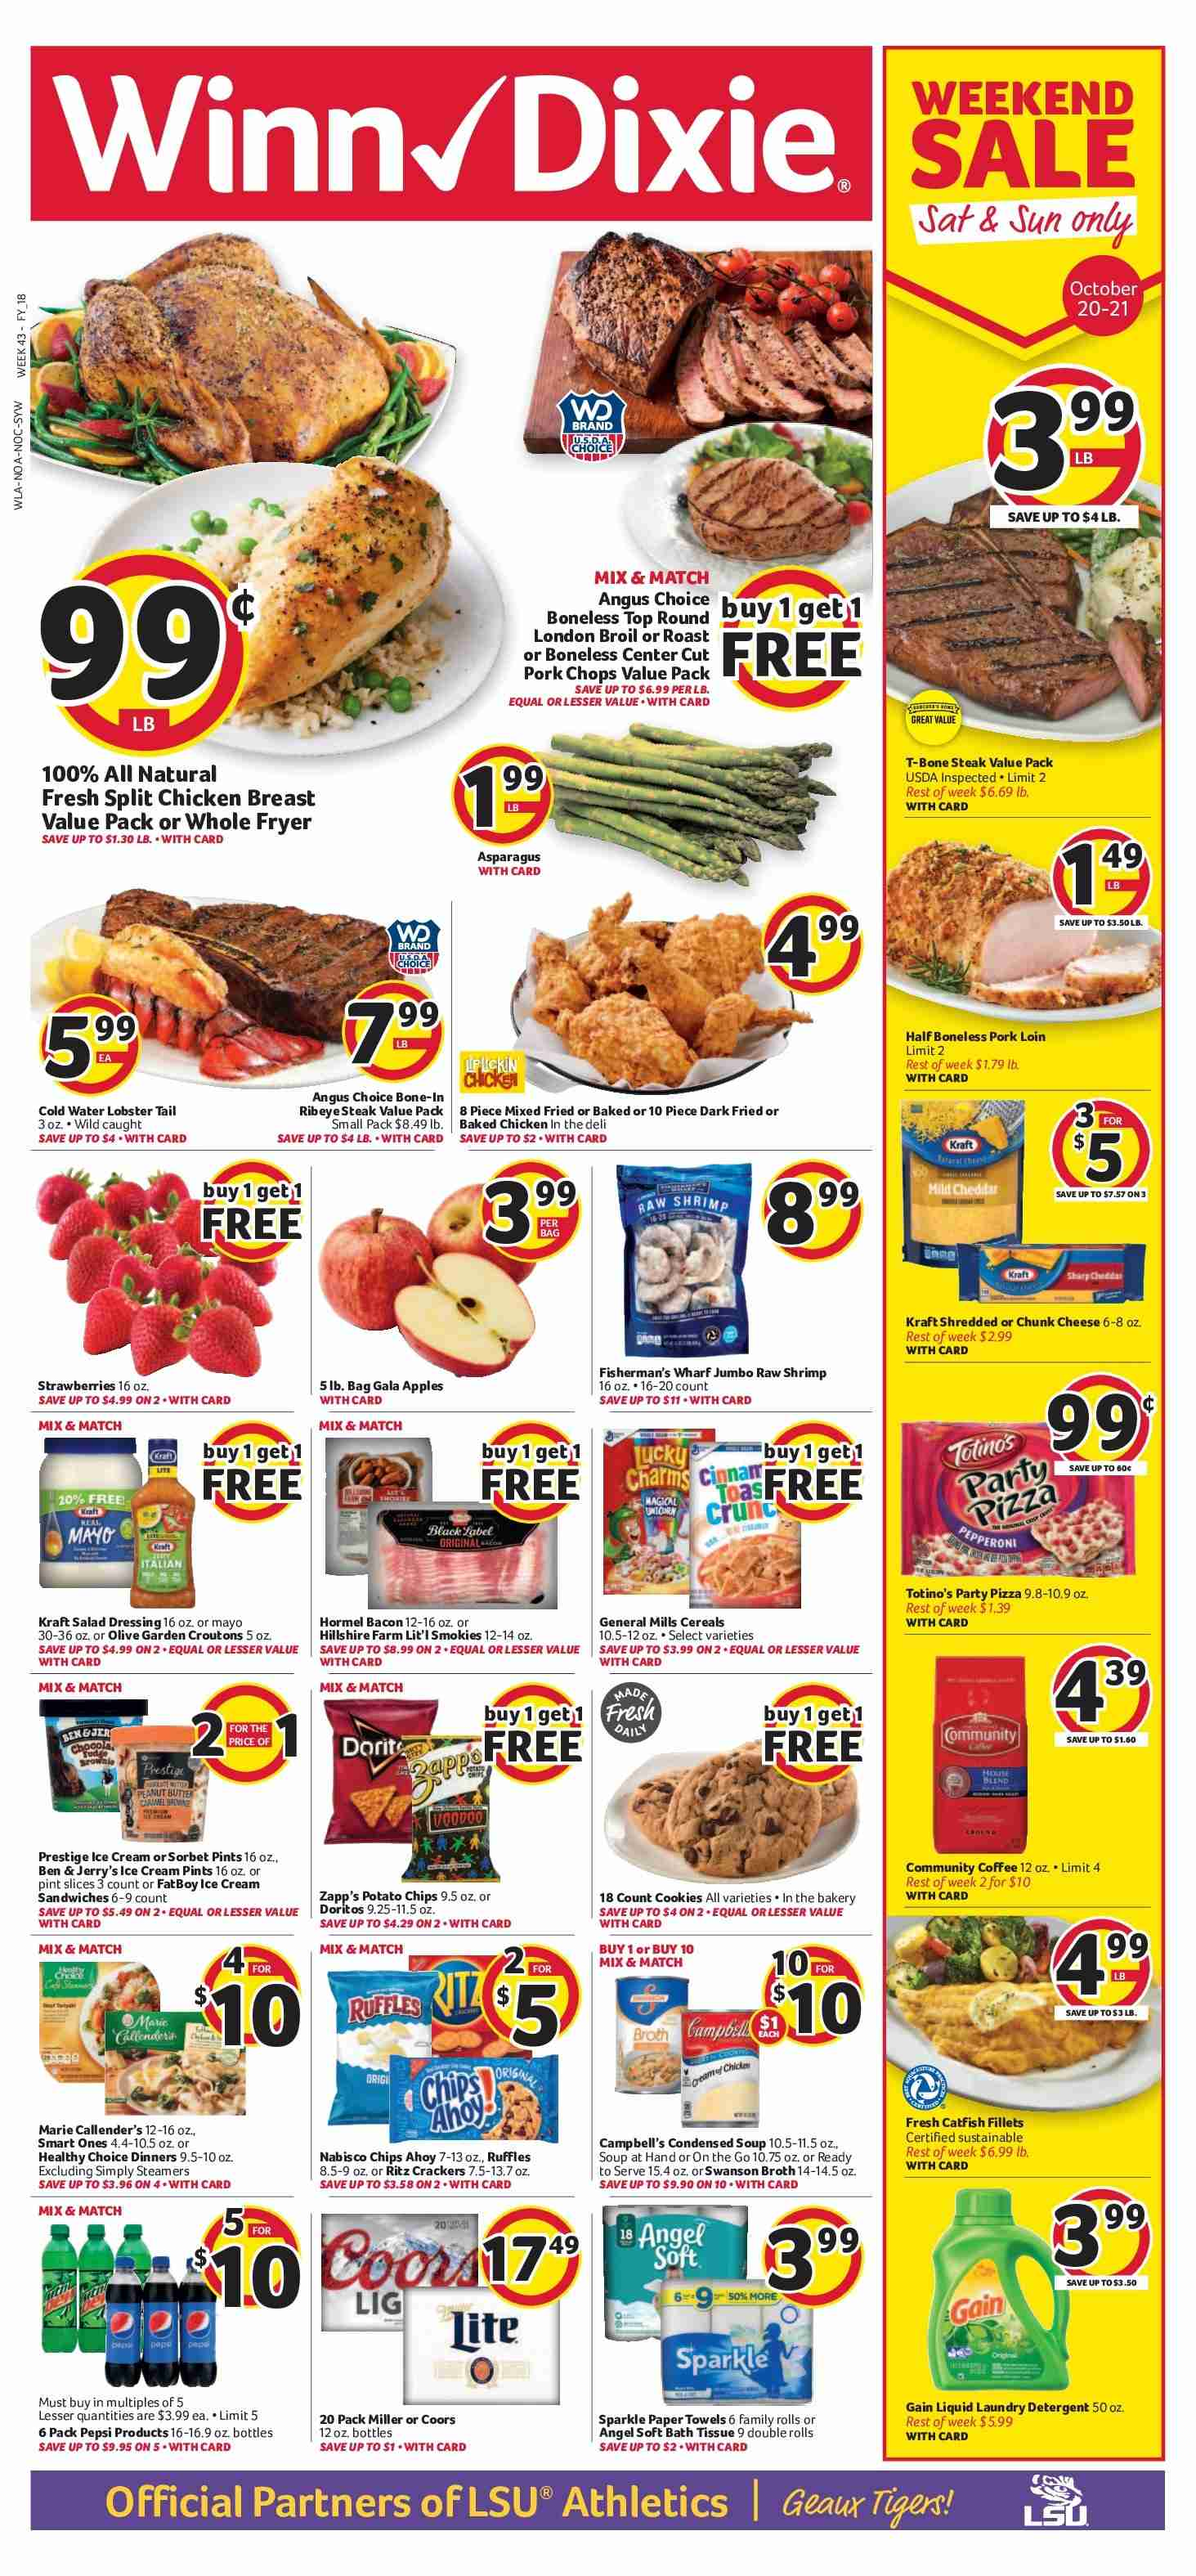 Winn Dixie Flyer - 10.17.2018 - 10.23.2018 - Sales products - apples, asparagus, bacon, bag, catfish, cereals, coffee, cookies, croutons, detergent, doritos, fryer, gain, gala apples, lobster, salad dressing, shrimp, hillshire farm, ice cream, pizza, pork chops, pork loin, pork meat, potato chips, chicken, pepsi, chips. Page 1.